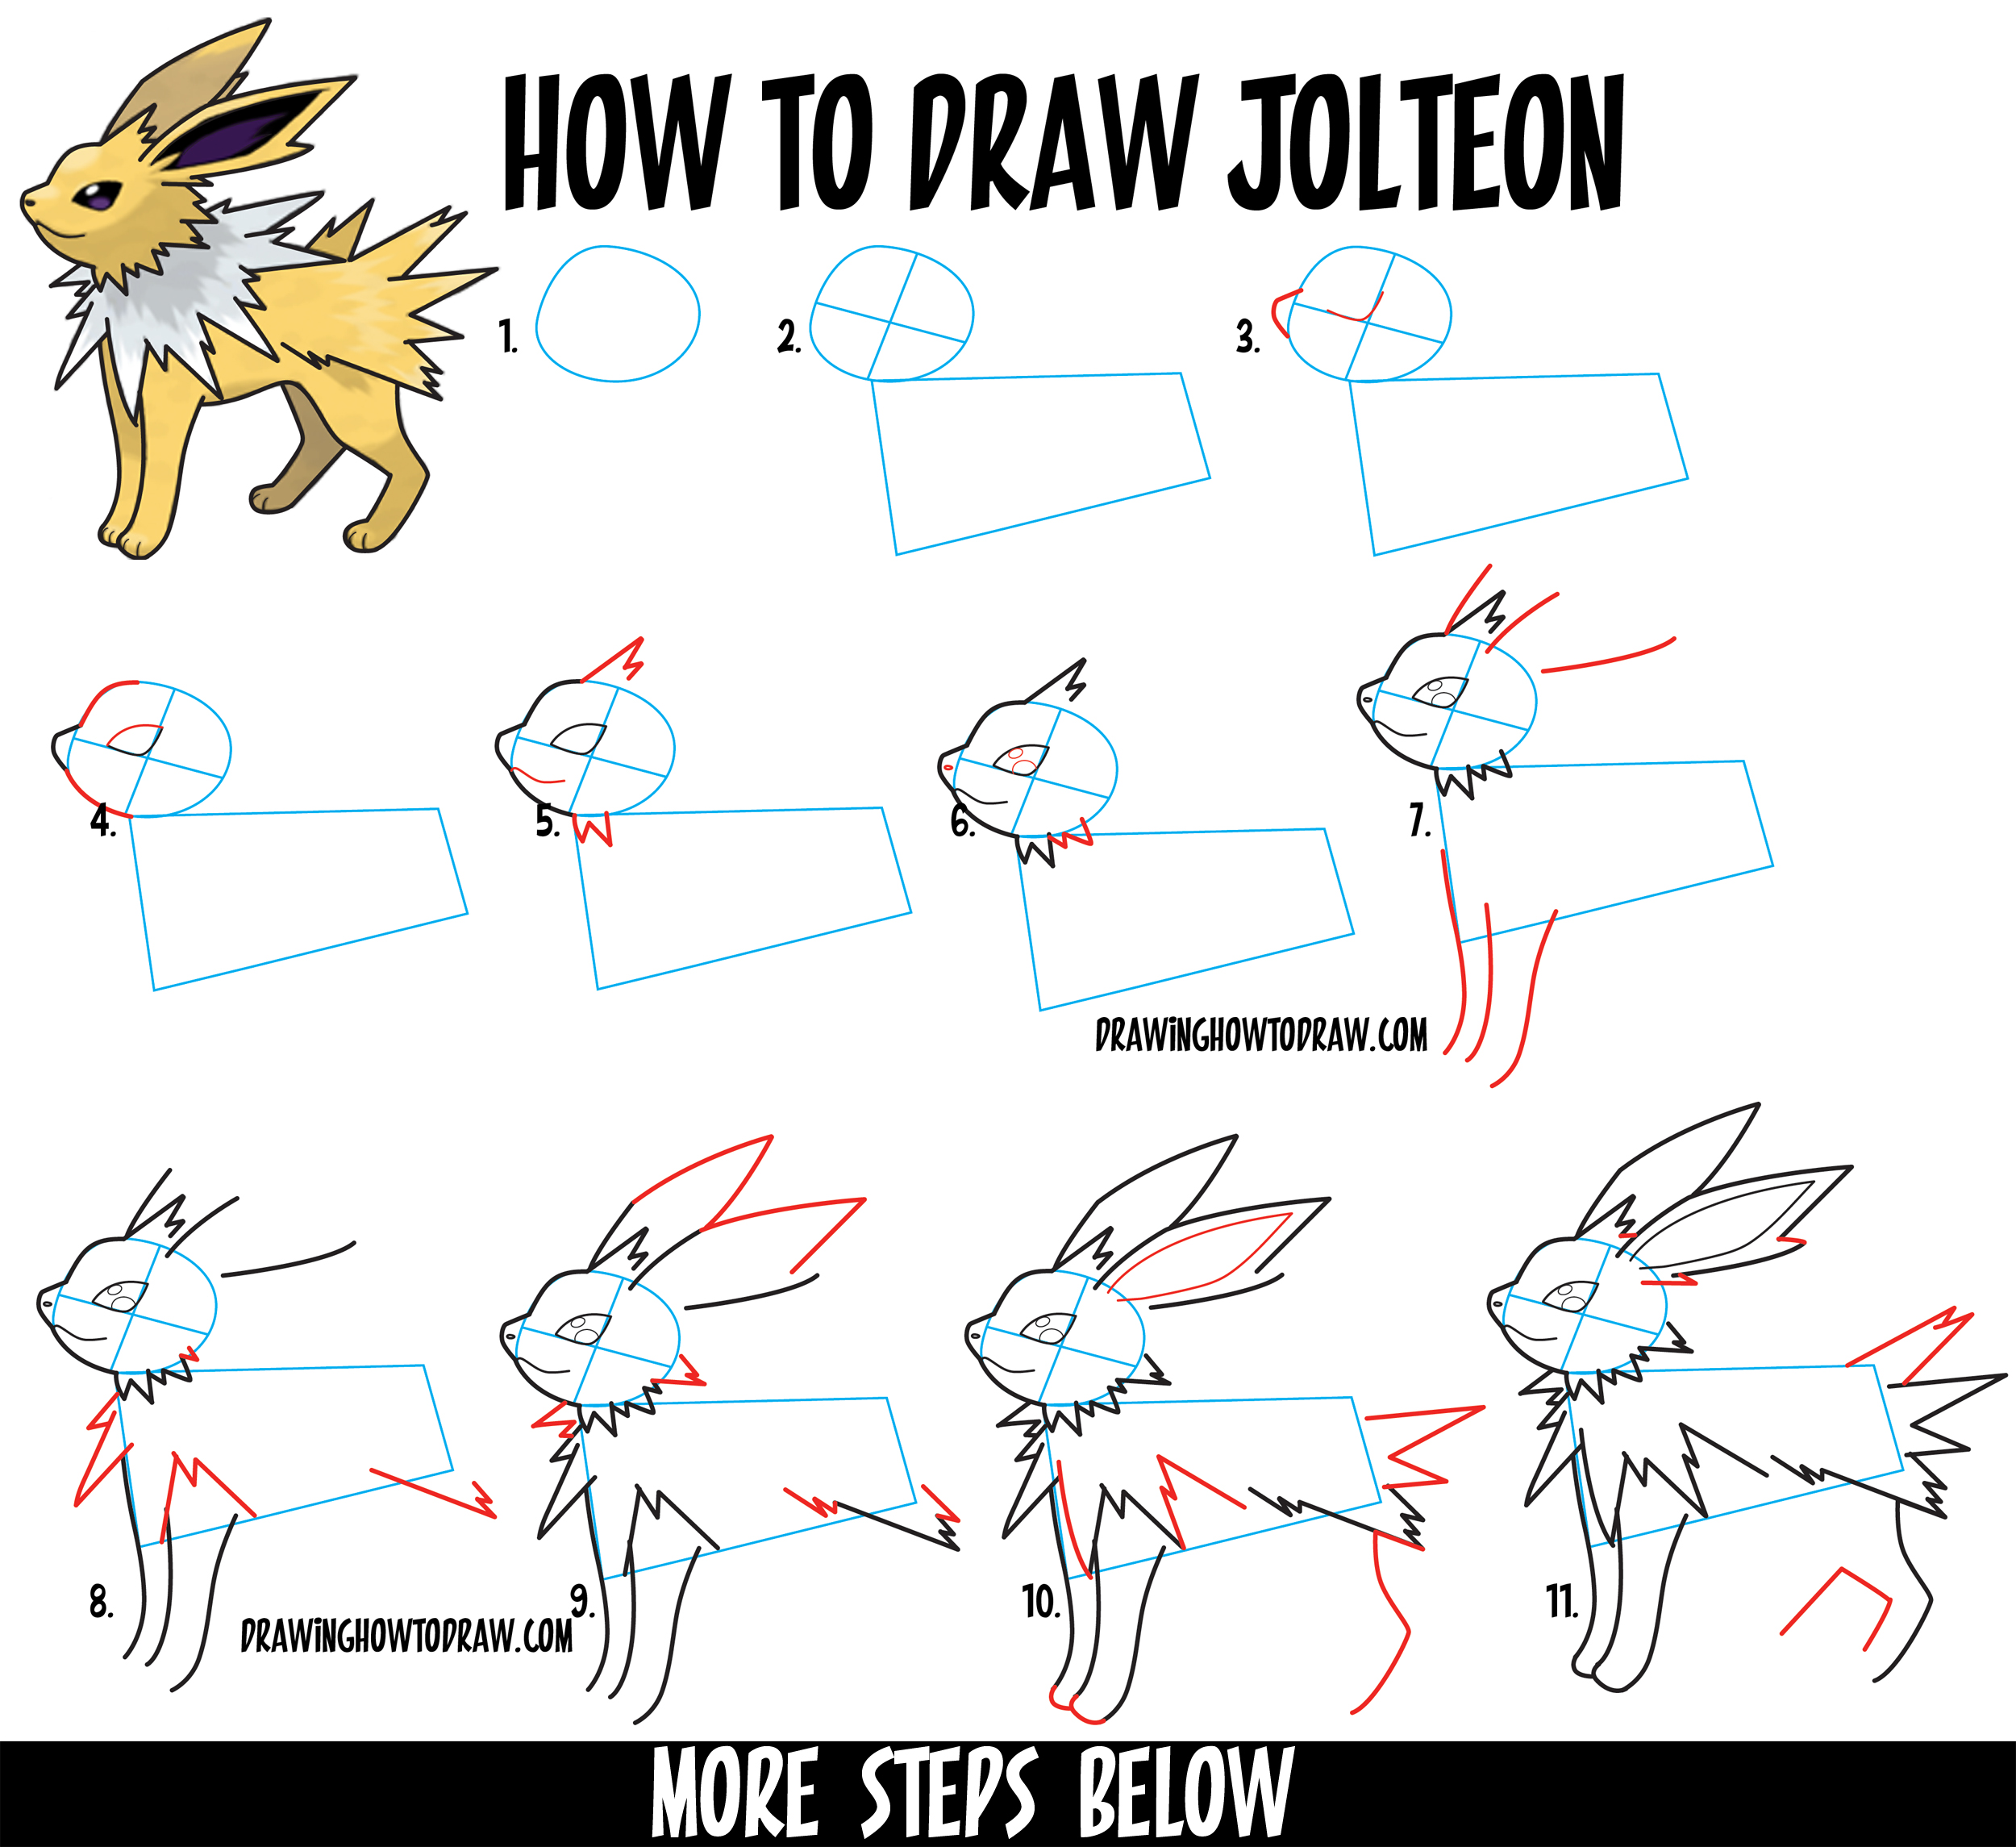 How to Draw Jolteon from Pokemon in Easy Step by Step Drawing Tutorial for Kids